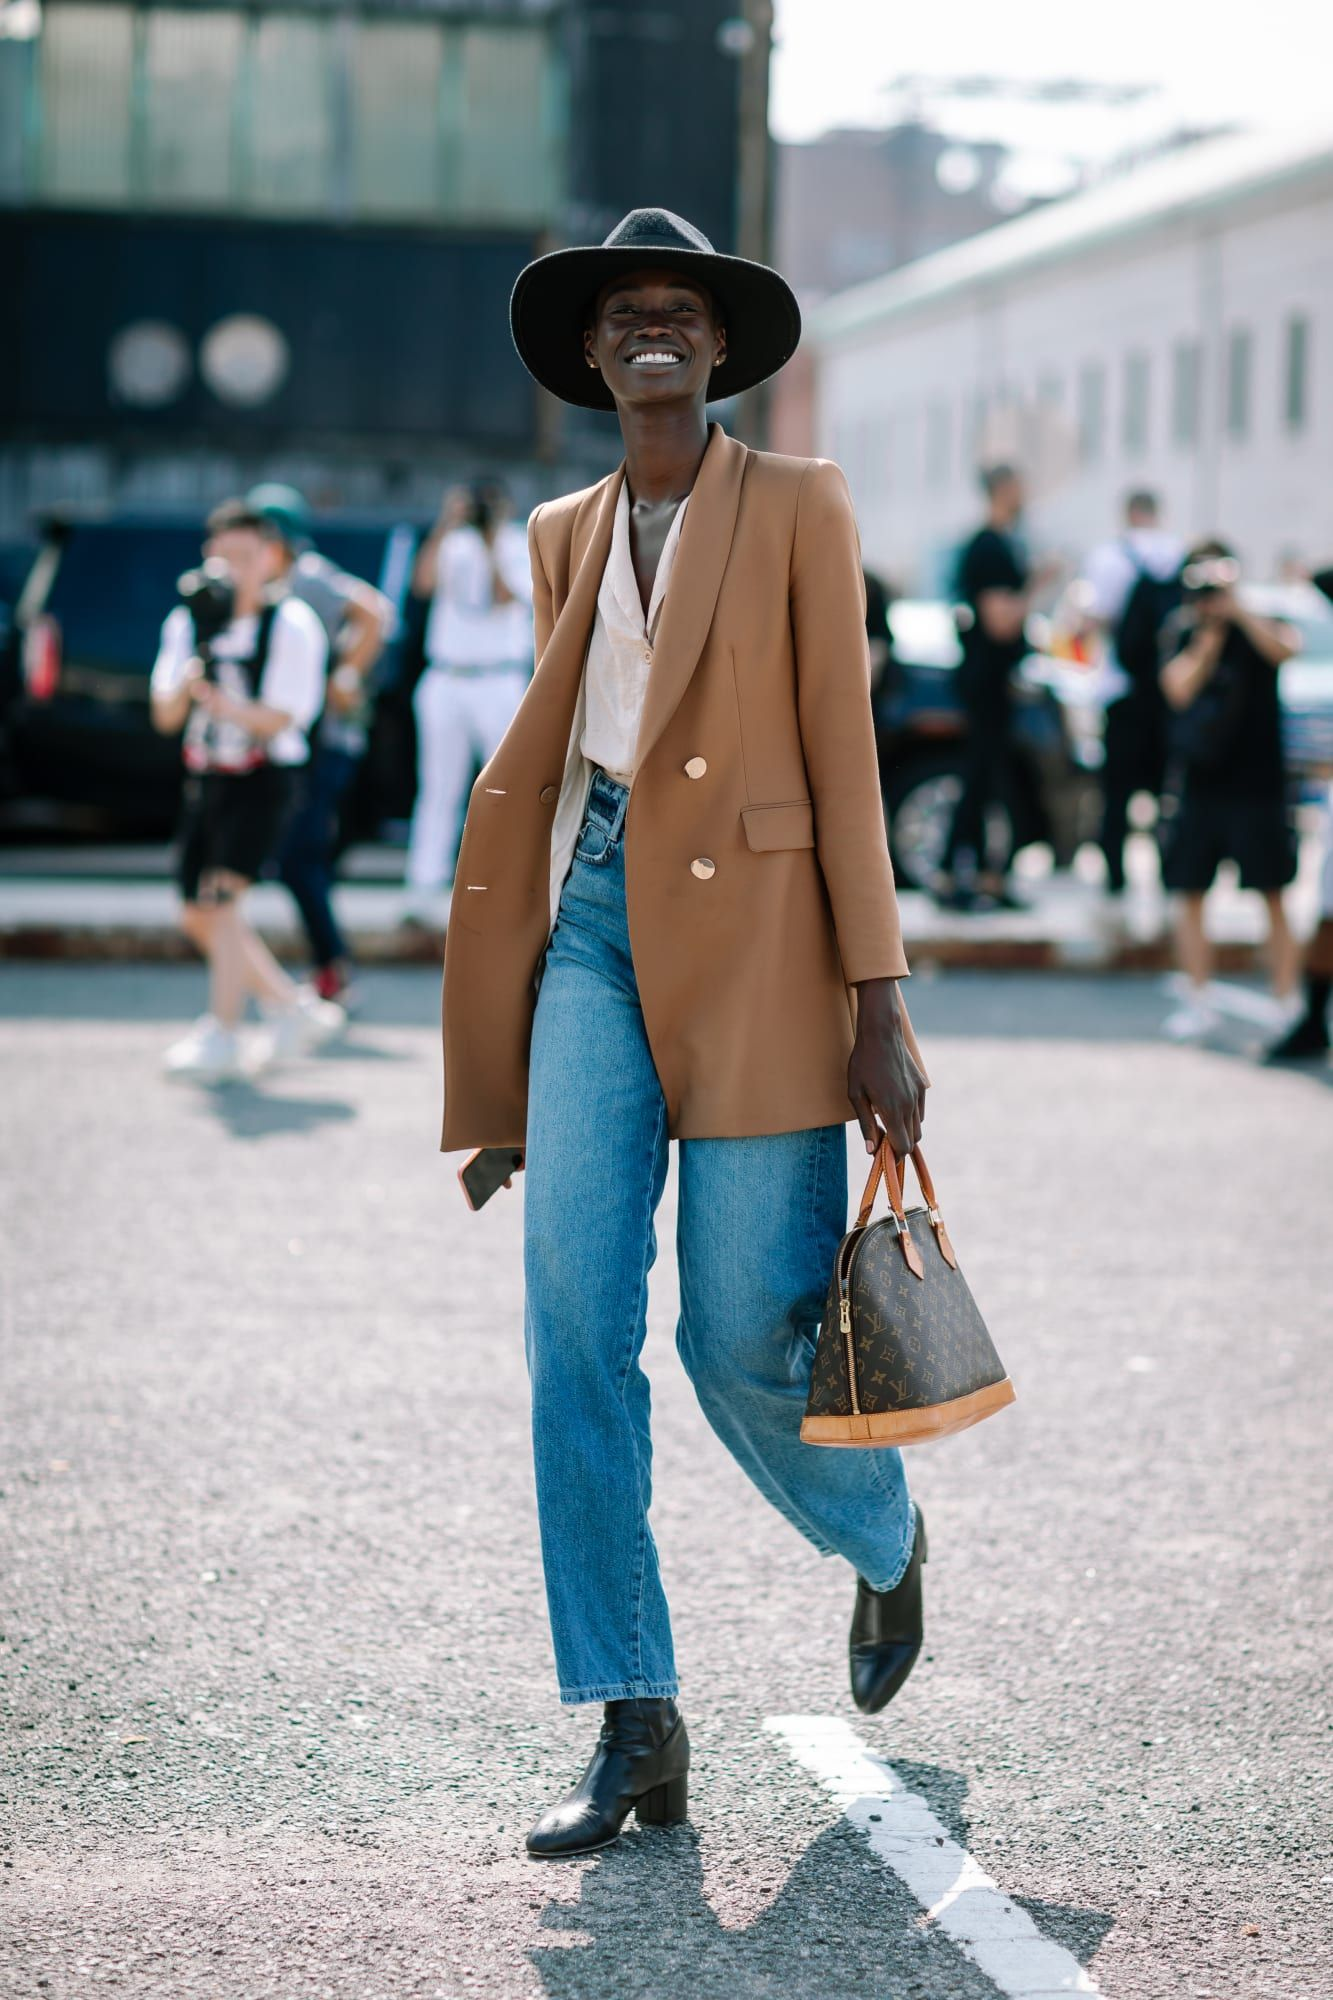 Mixed Prints Were a Street Style Favorite on Day 6 of New York Fashion Week - Fashionista